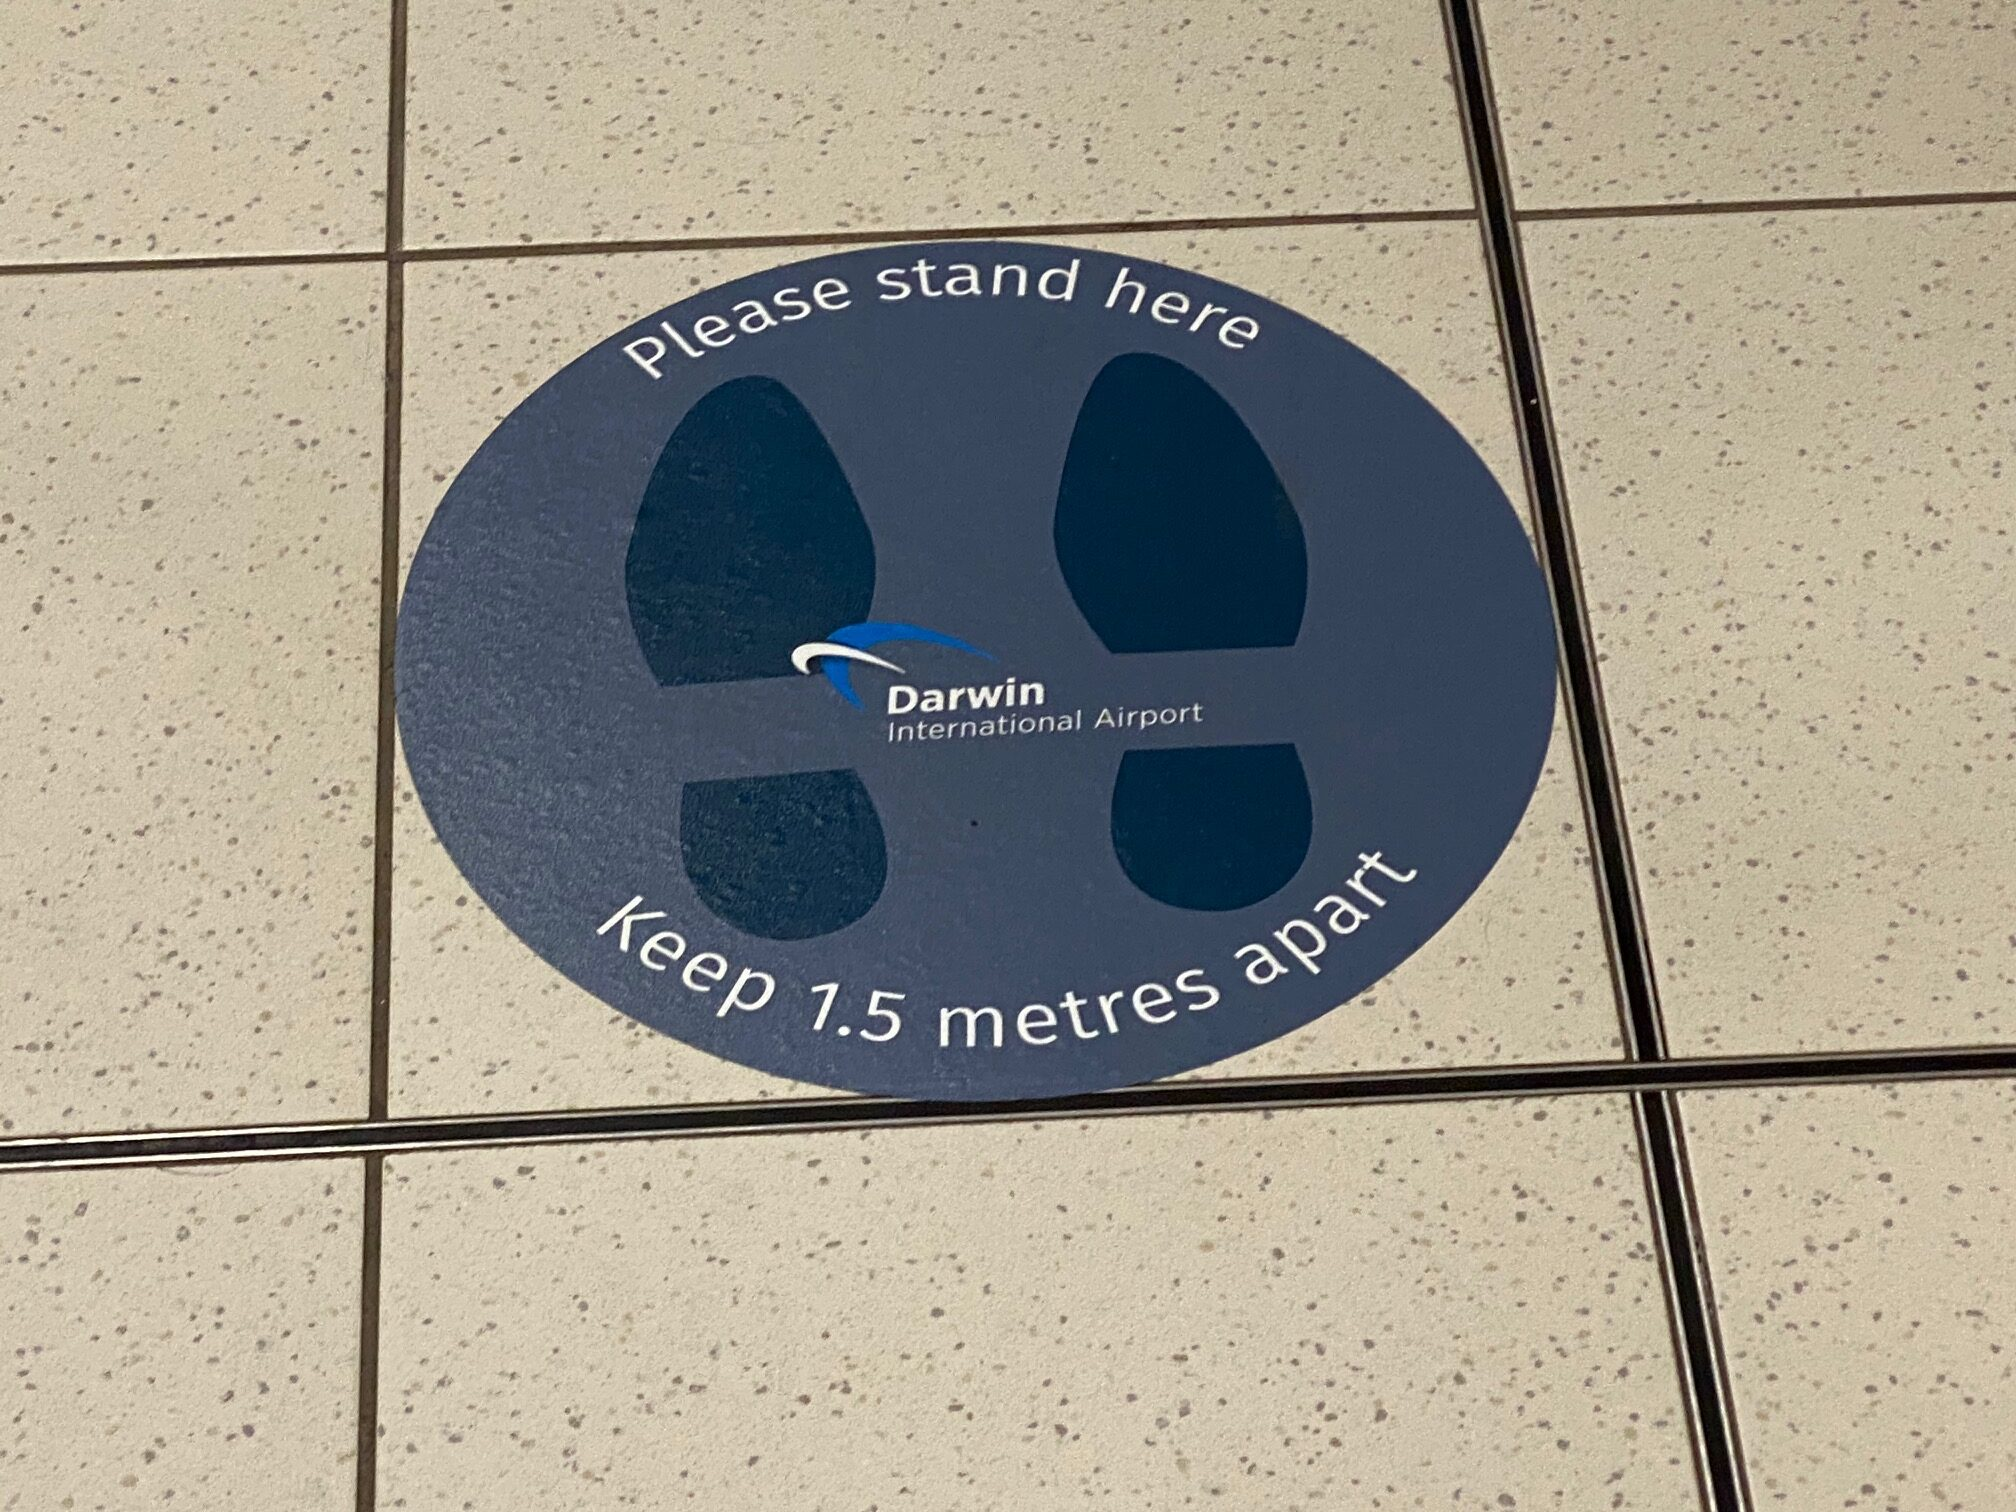 COVID safe message, Darwin Airport